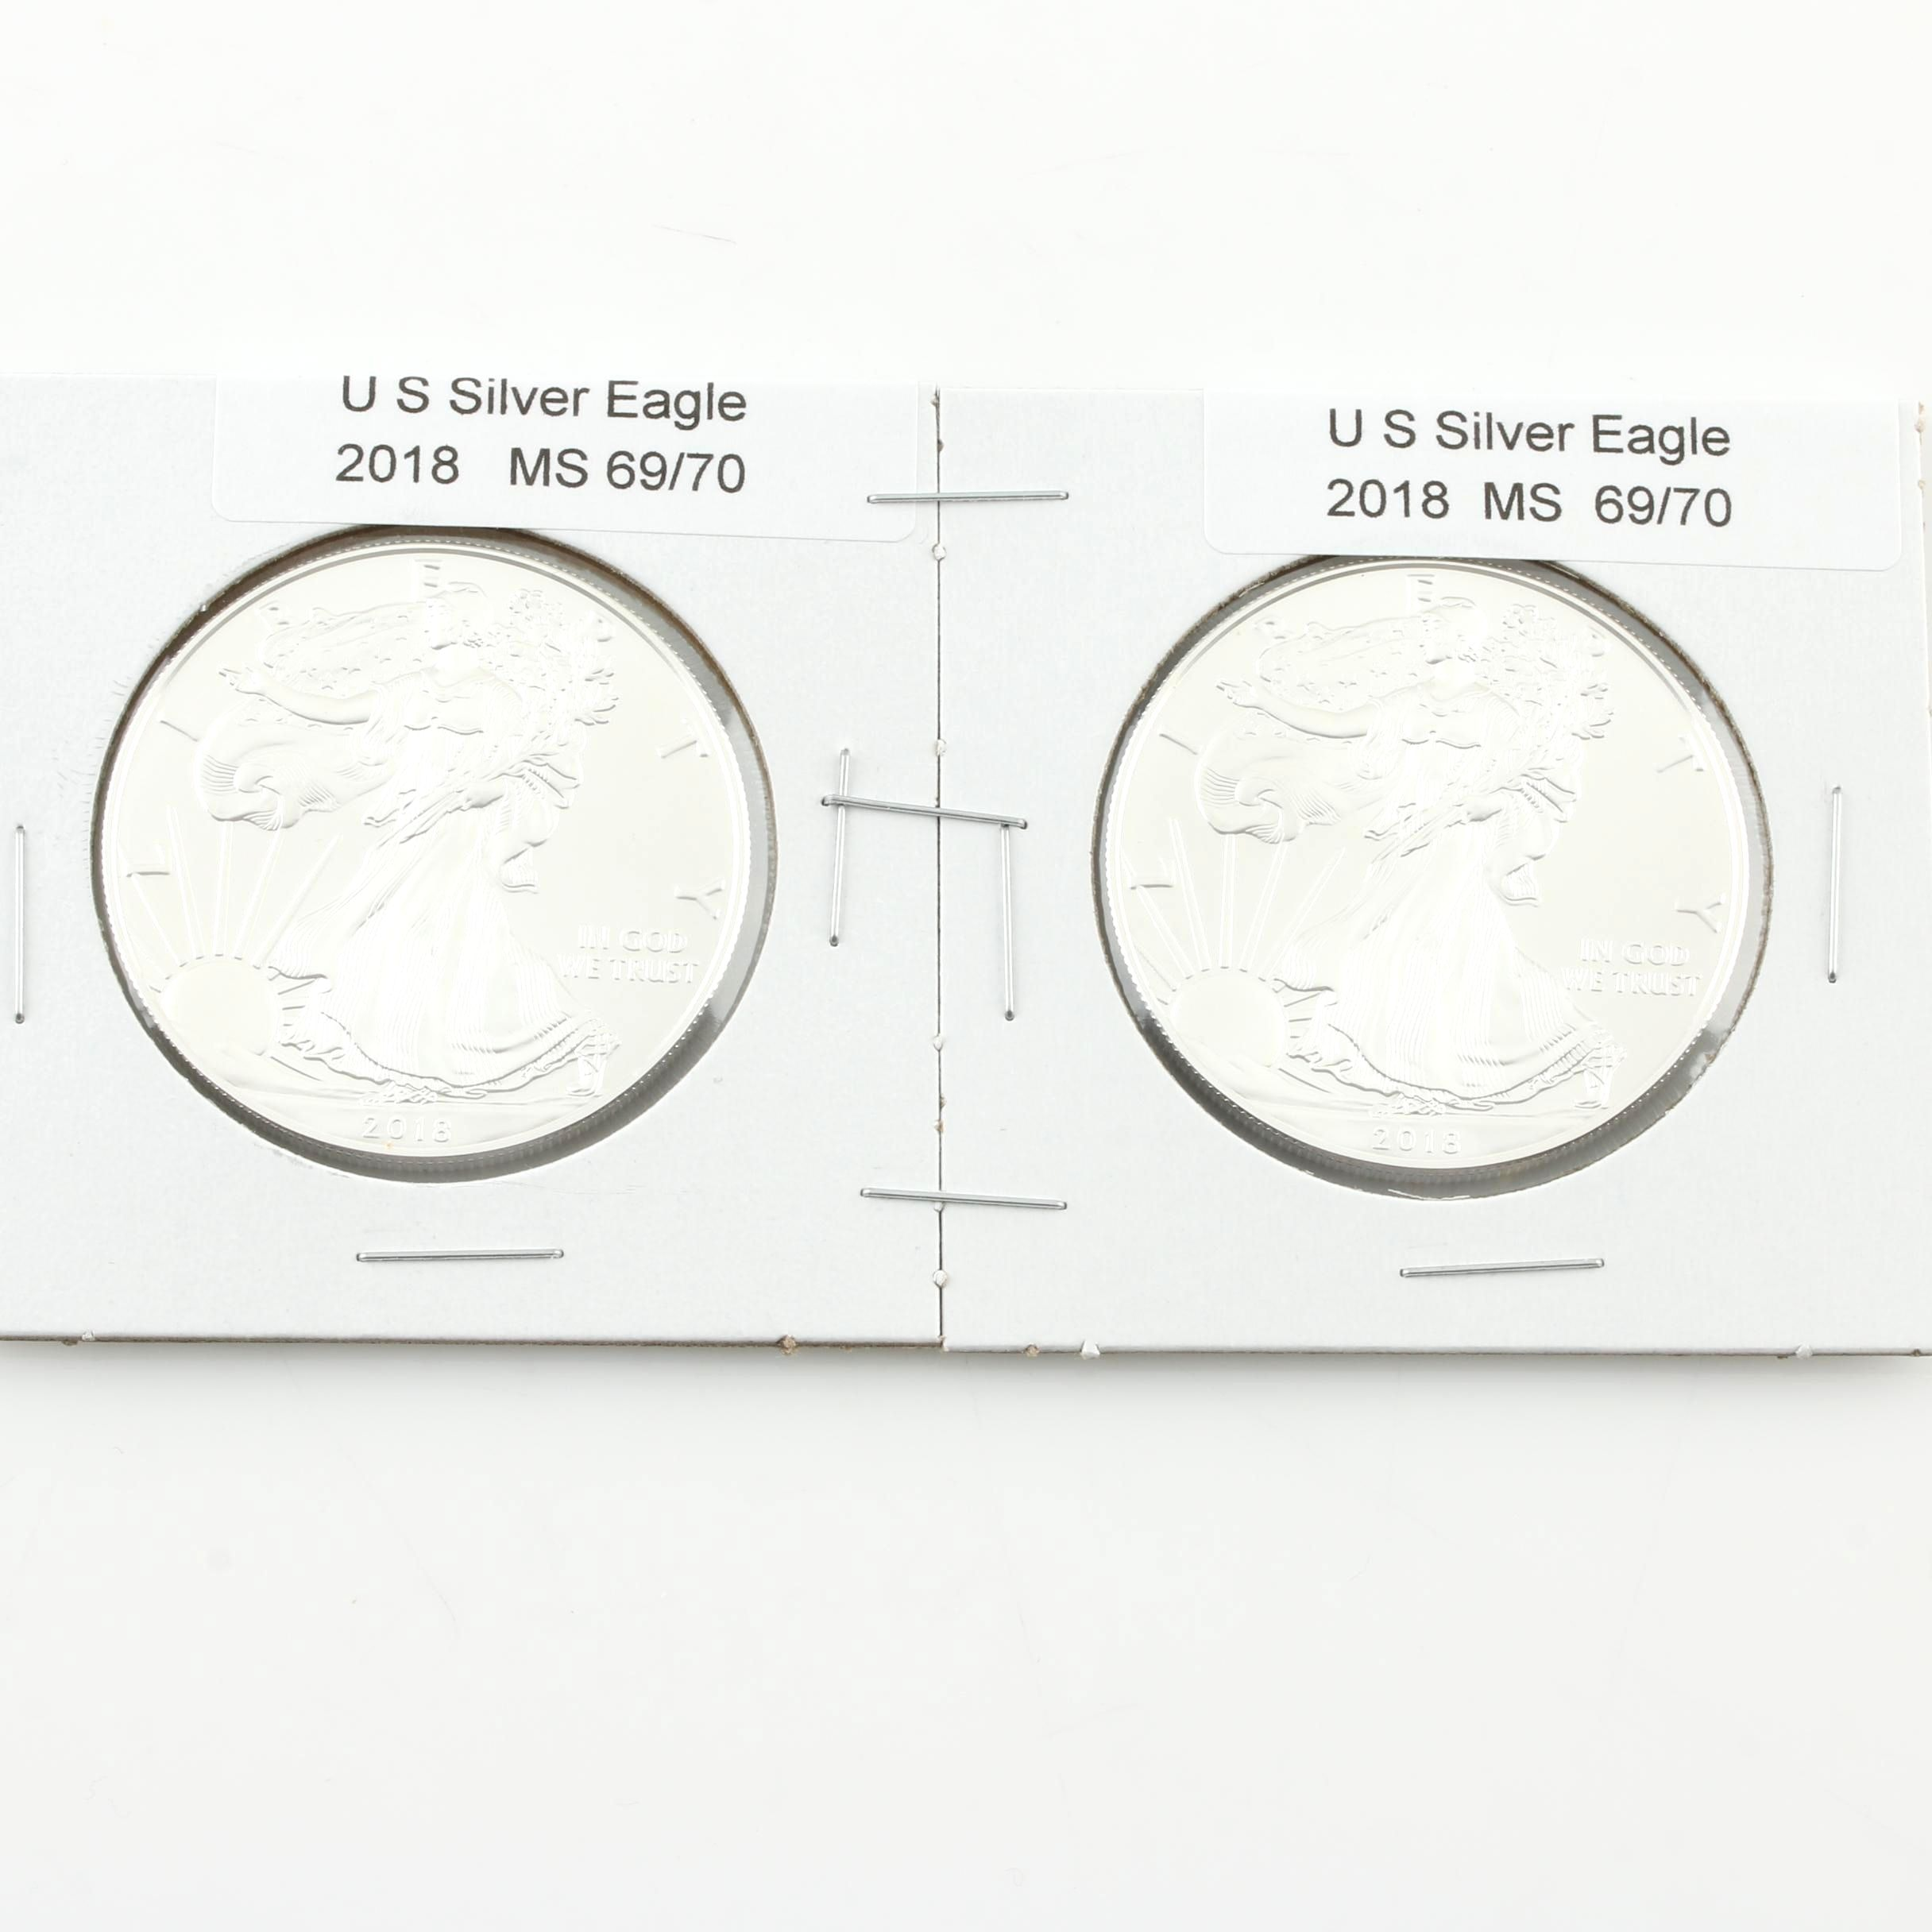 Group of Two 2018 One Dollar U.S. Silver Eagles